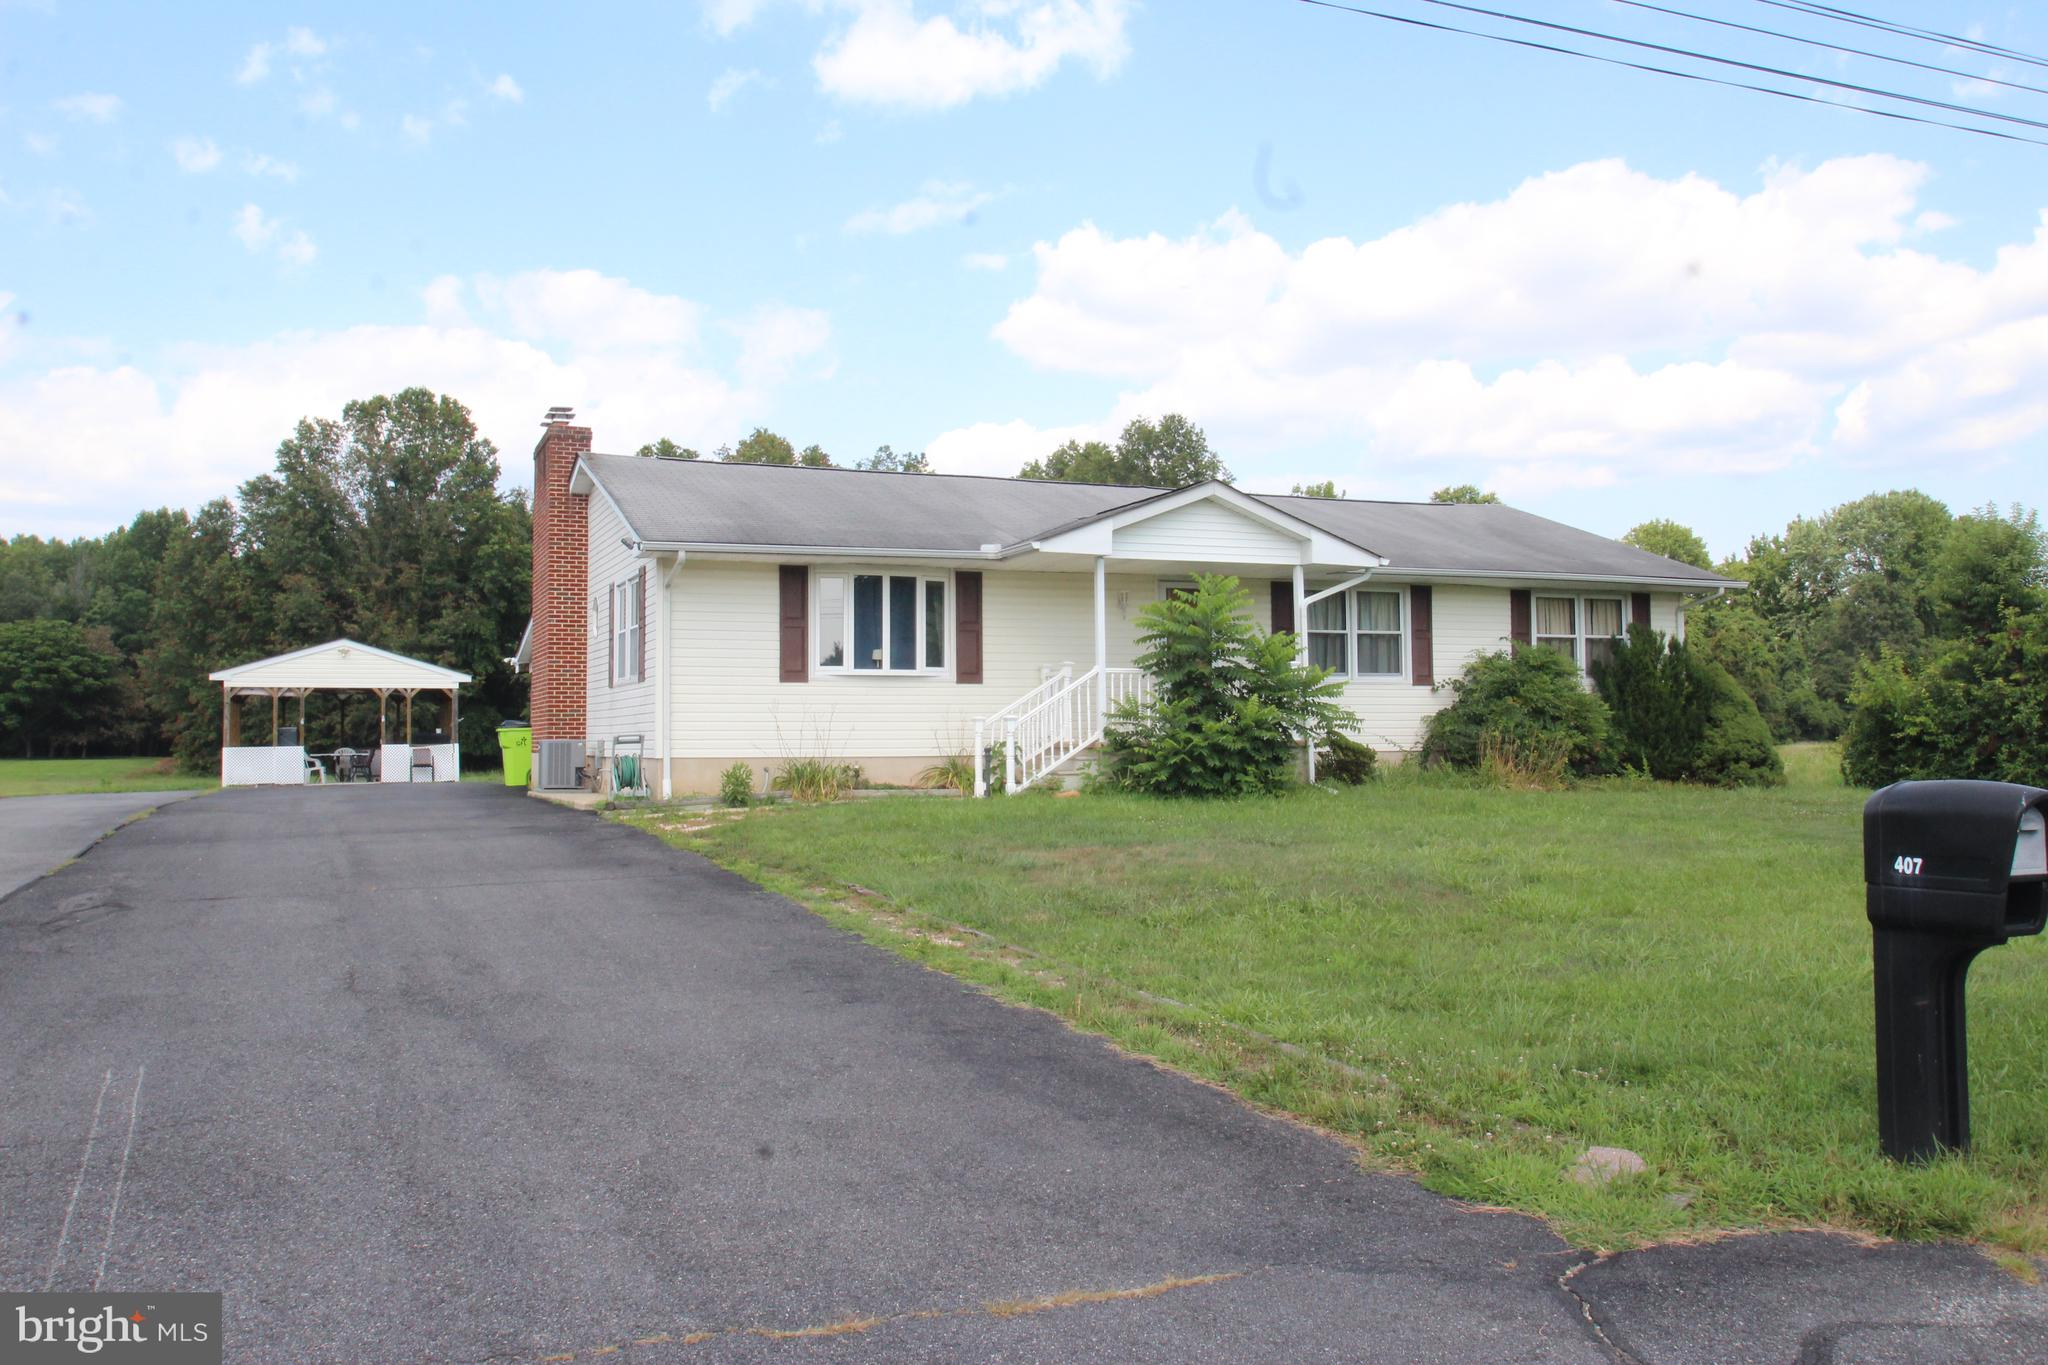 Rare find in AppoquiniminkSchool district! 3BR, 3BA Ranch home on 1 acre lot with enclosed rear porch. Large living room leads to Family room with brick fireplace. Eat in kitchen overlooks the rear yard. The basement is semi finished with a den, 2nd family room and full bath. This home is a little dated, but has good bones.